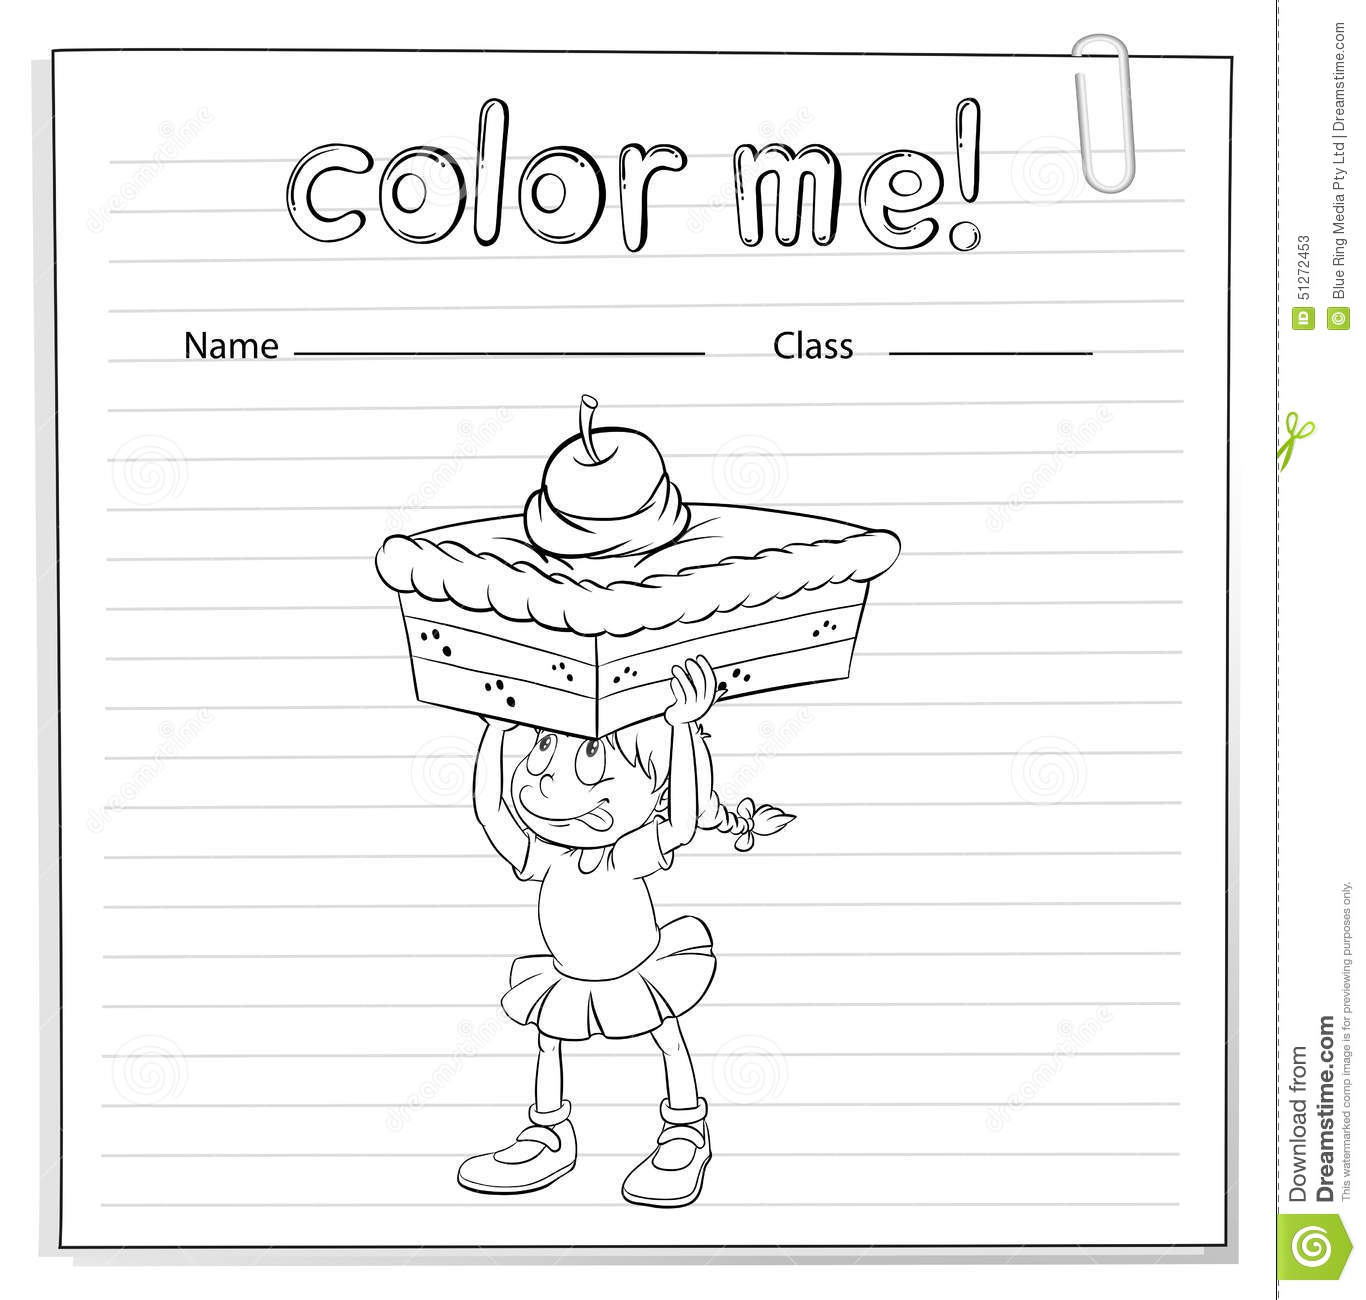 Coloring Worksheet With A Girl Carrying A Cake Stock